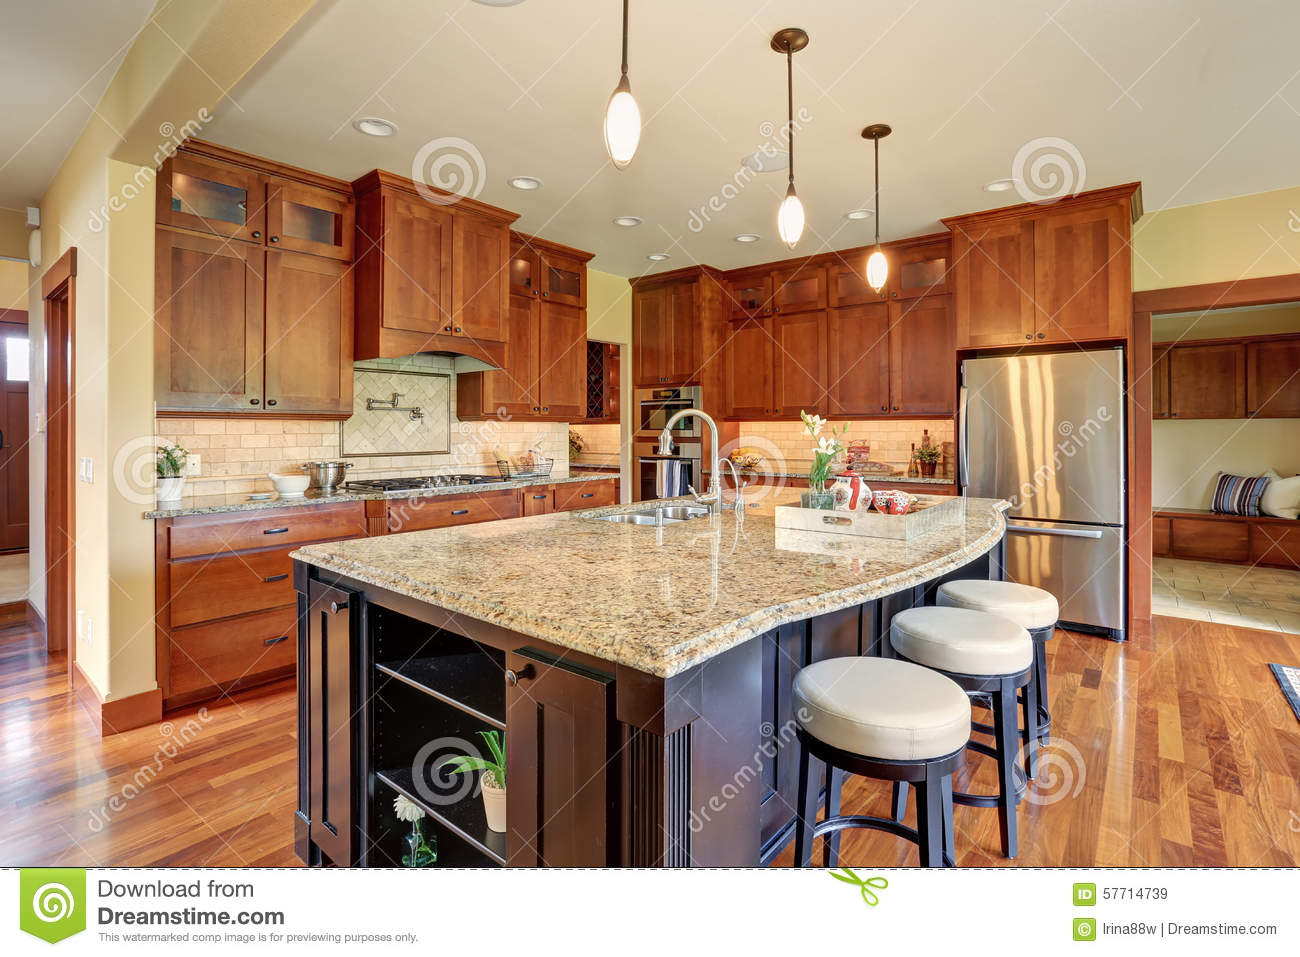 sink kitchen cabinets professional home appliances luxury with bar style island. stock image - ...